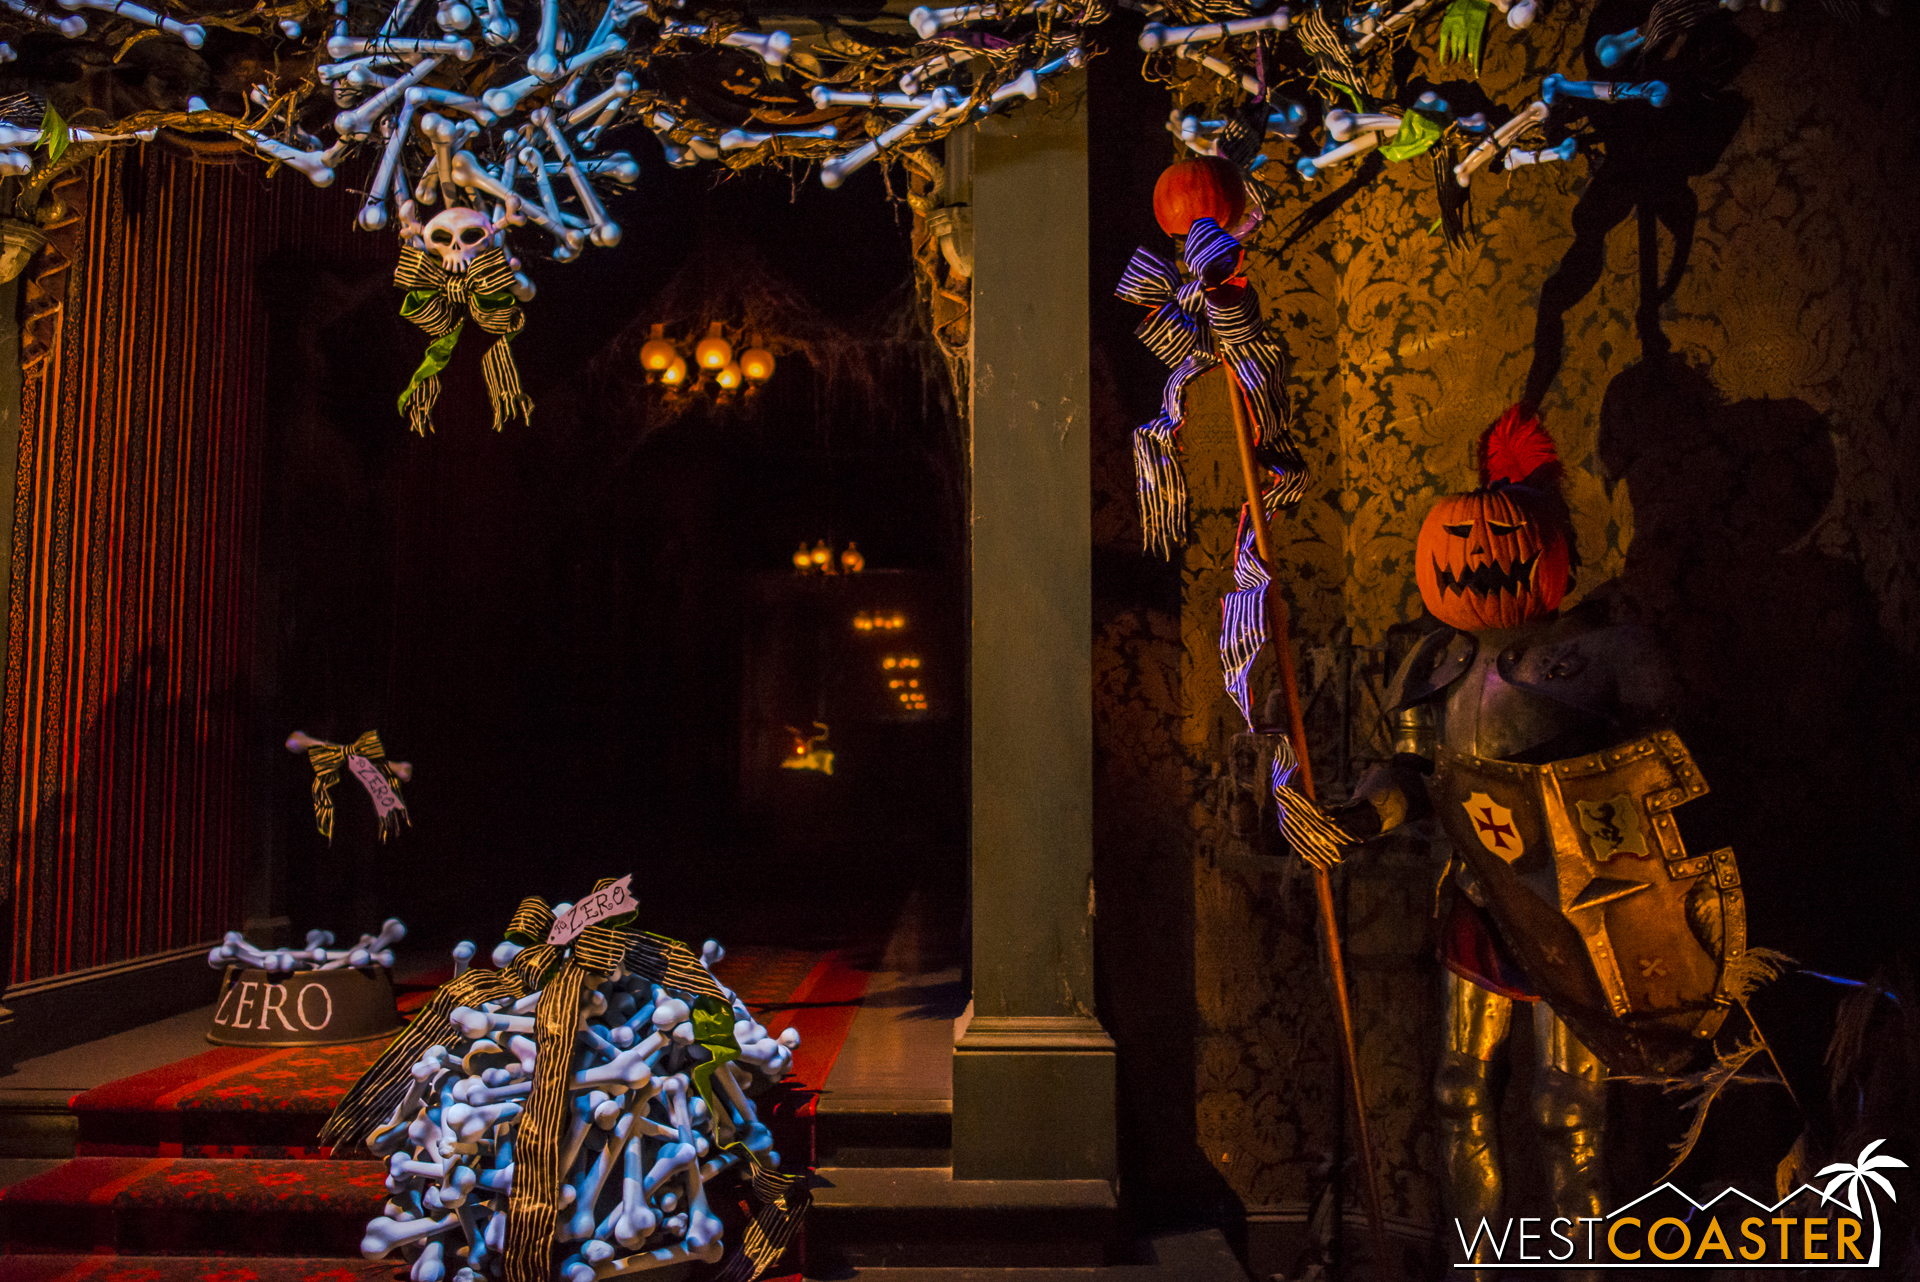 Zero, the ghost dog reindeer, lurks at the end of the Endless Hallway in Haunted Mansion Holiday.